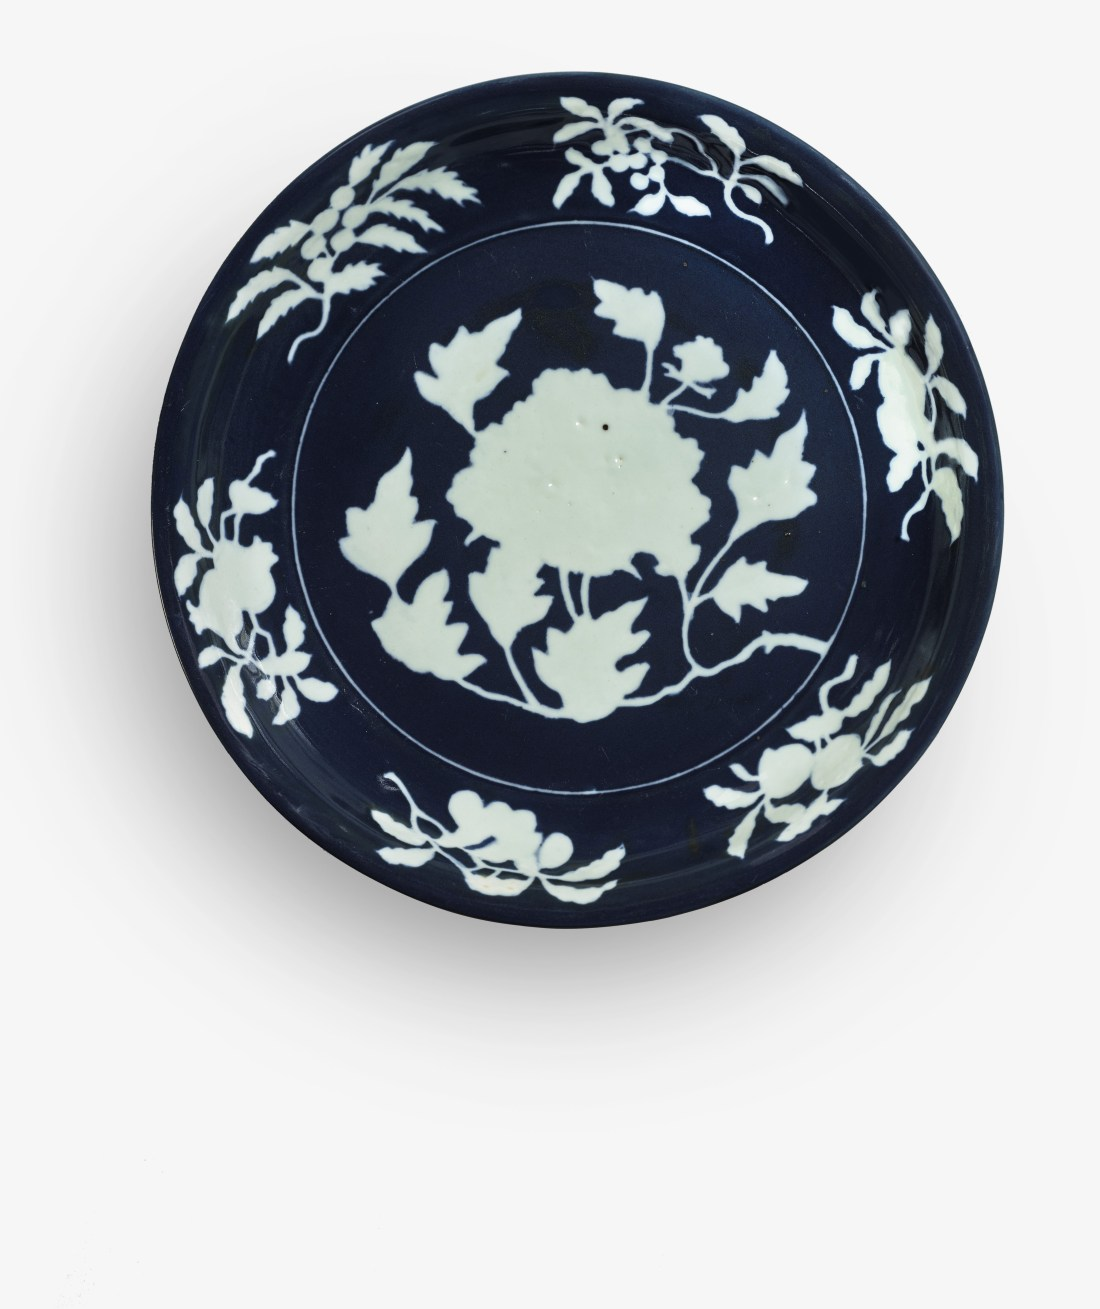 An exceptionally rare and large fine blue-and-white reserve decorated peony dish, estimated at $1 million to $1.5 million.